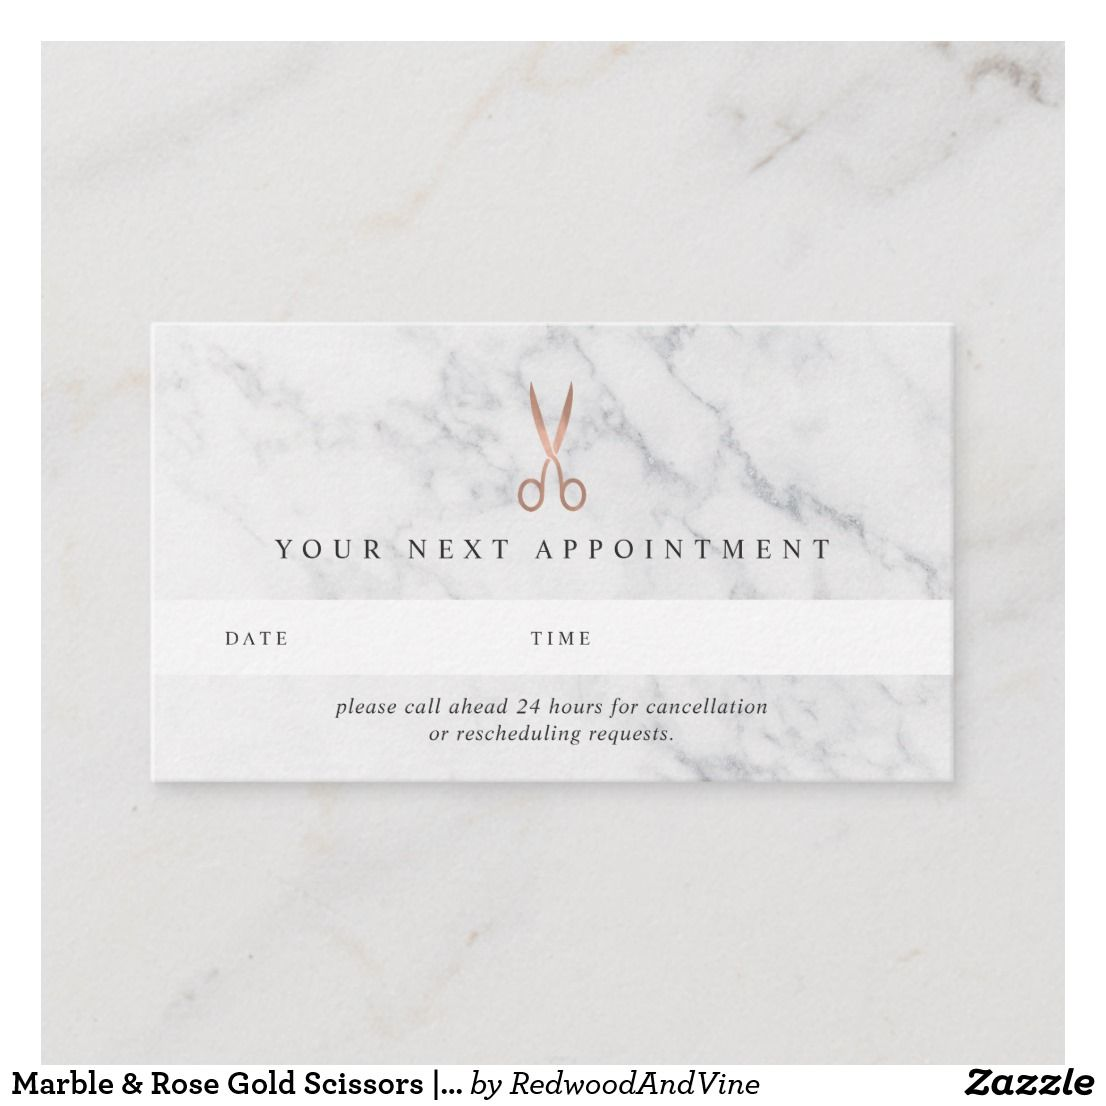 Marble & Rose Gold Scissors Hair Salon Appointment Card